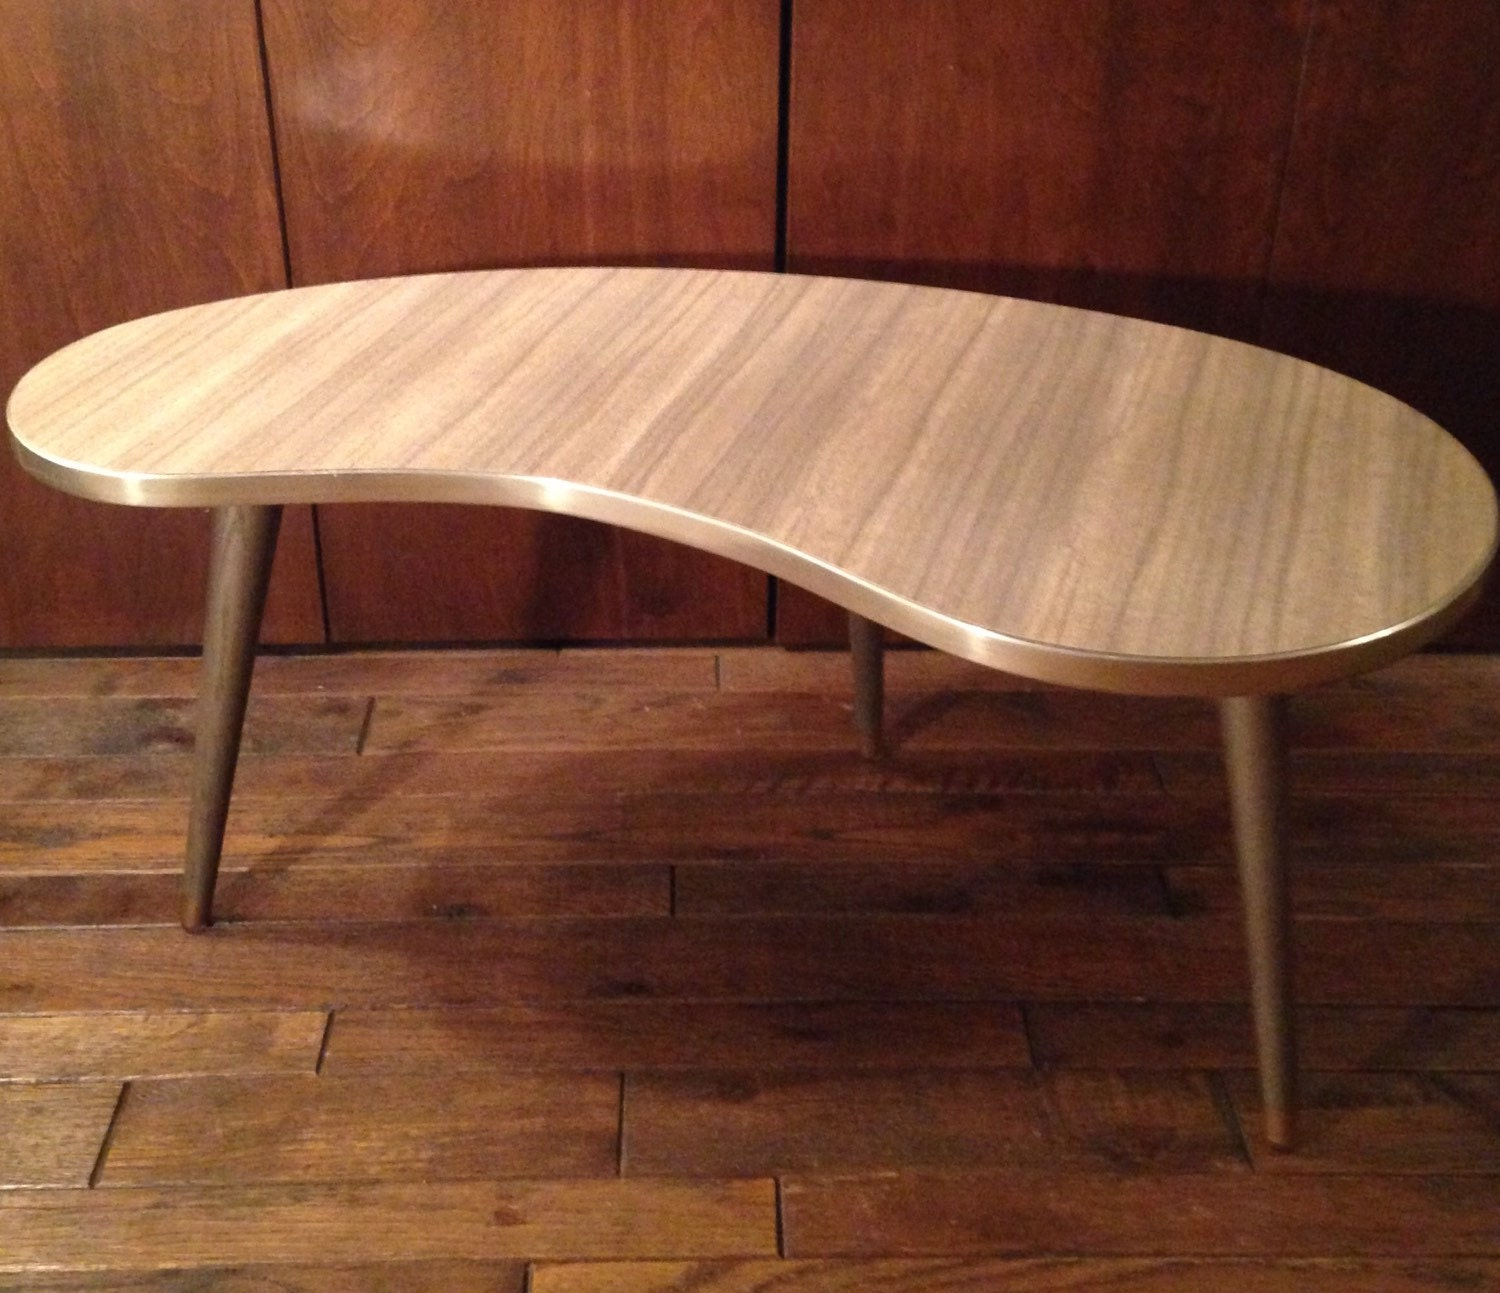 Mid Century Modern Coffee Table Kidney Bean Shaped Atomic: Kidney Bean Coffee Table Formica Top With Brass Edging And